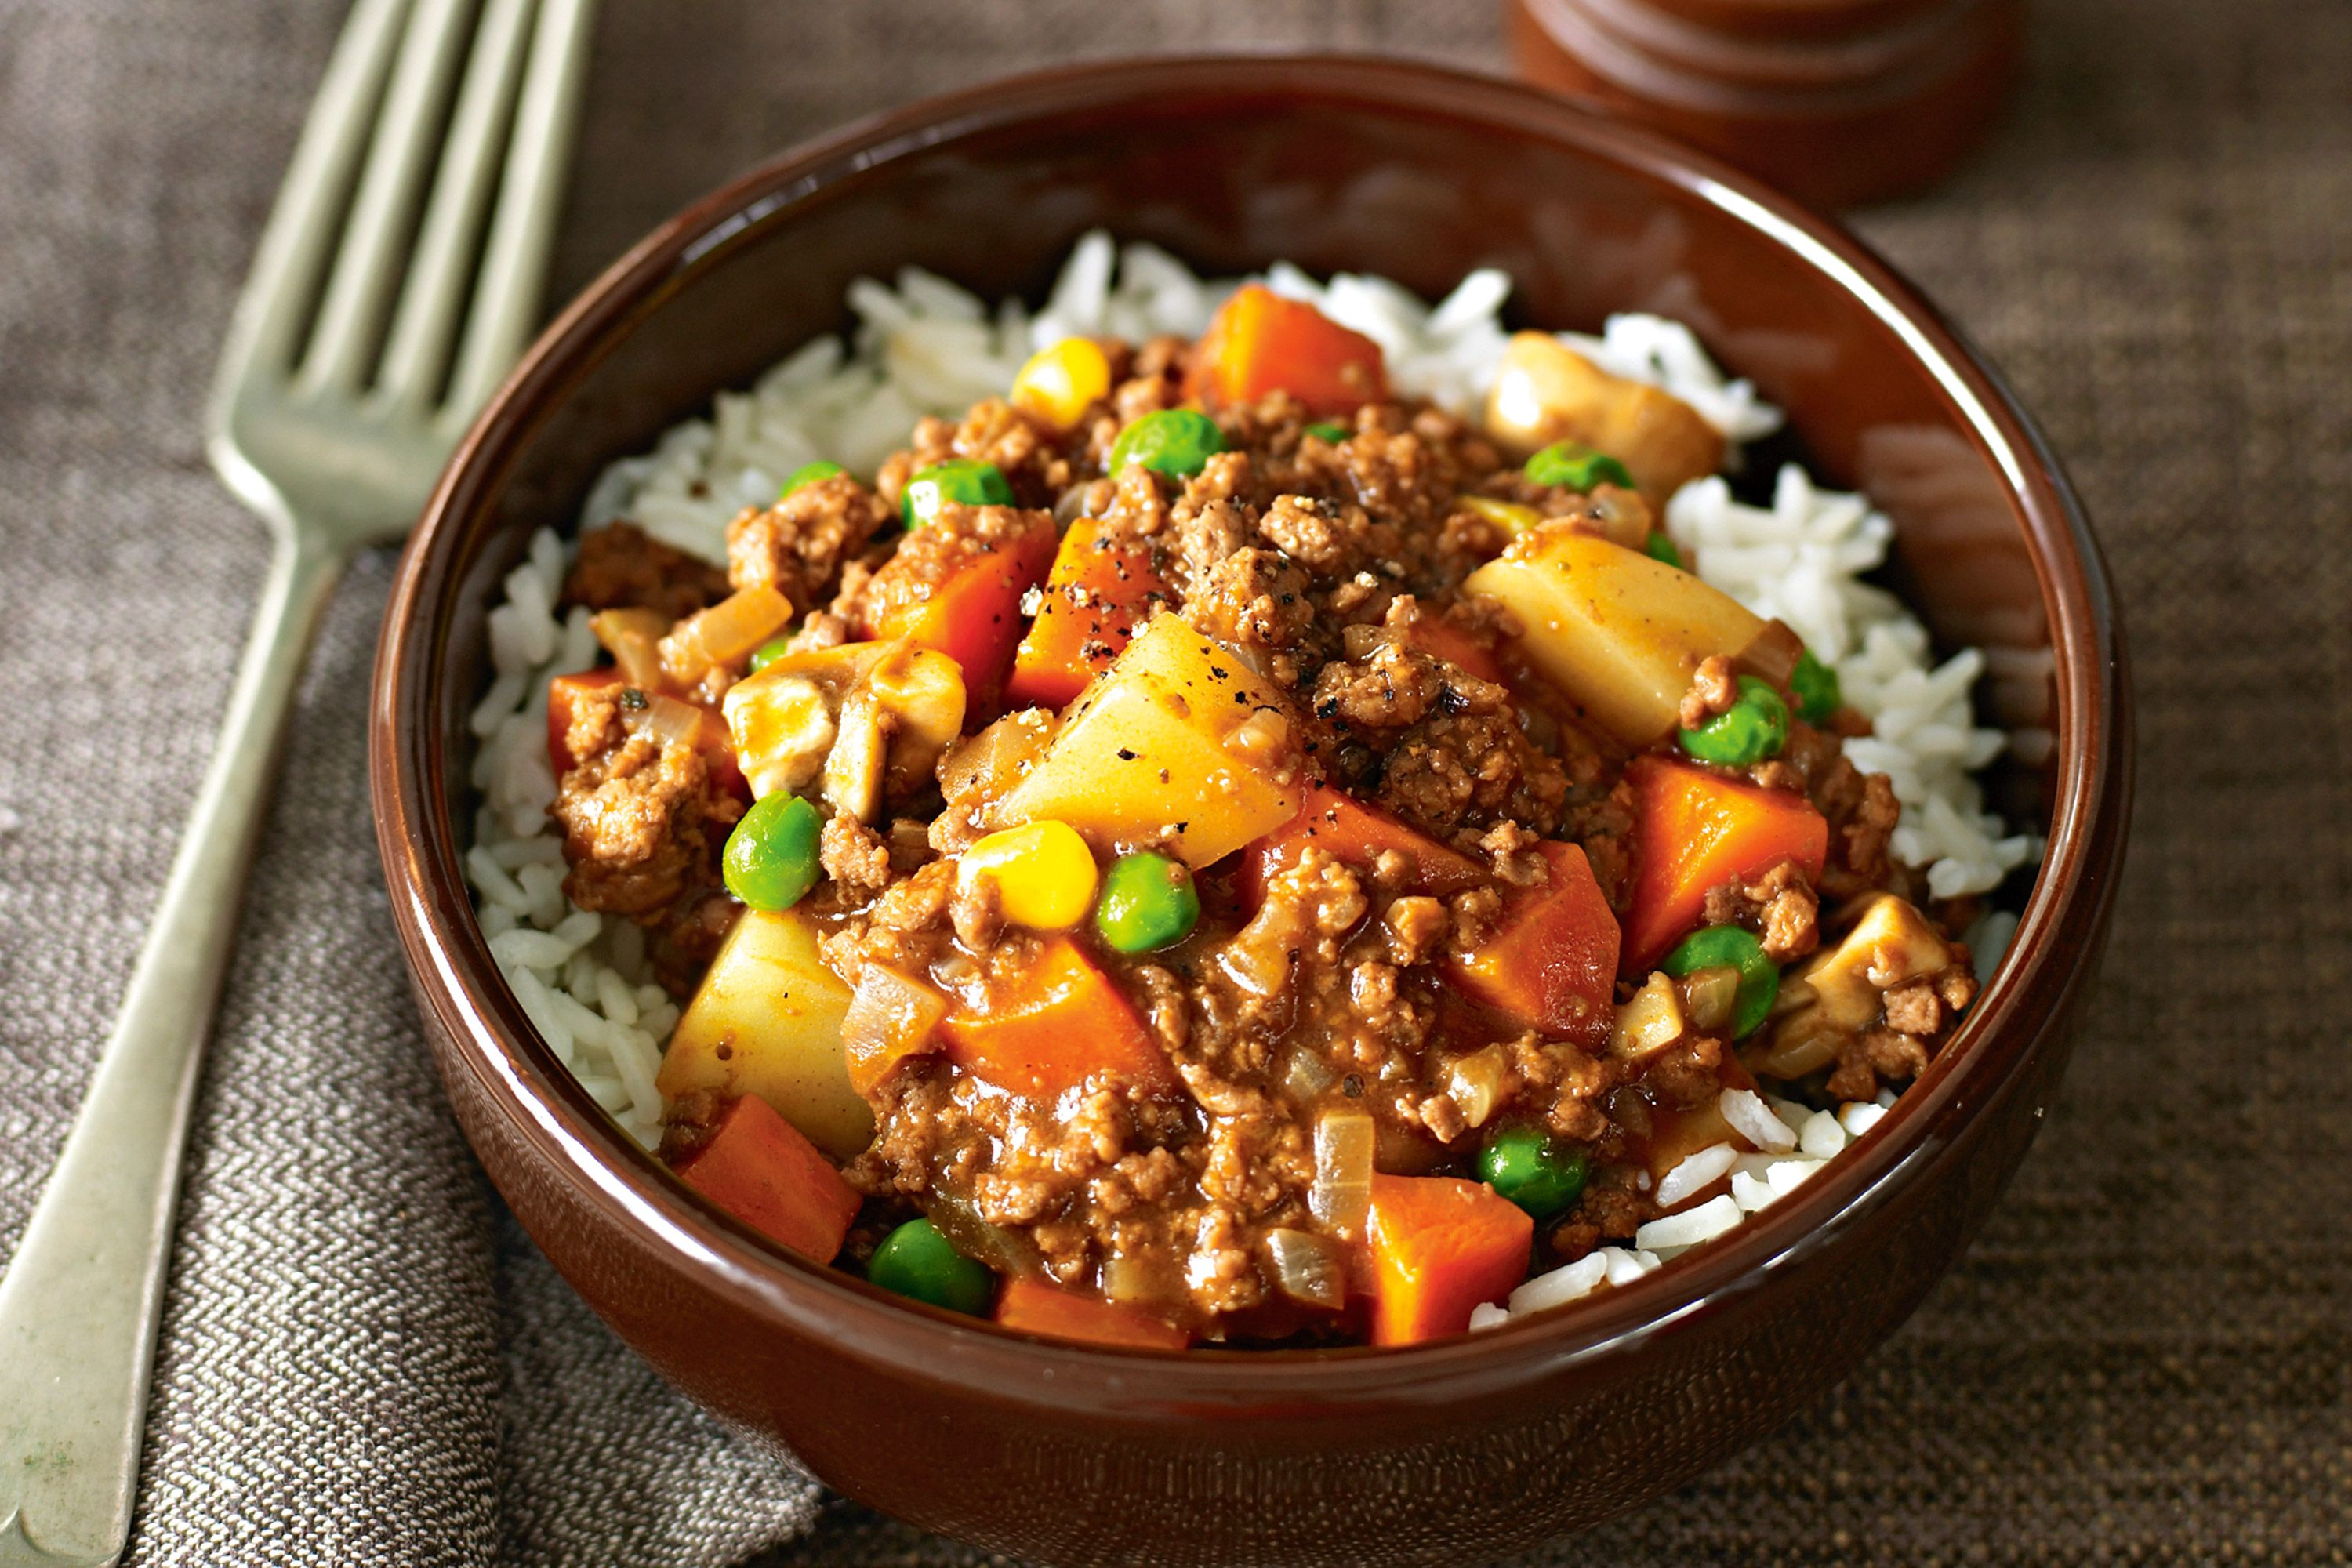 Savoury Mince Recipe Mince Recipes Minced Beef Recipes Mince Dishes